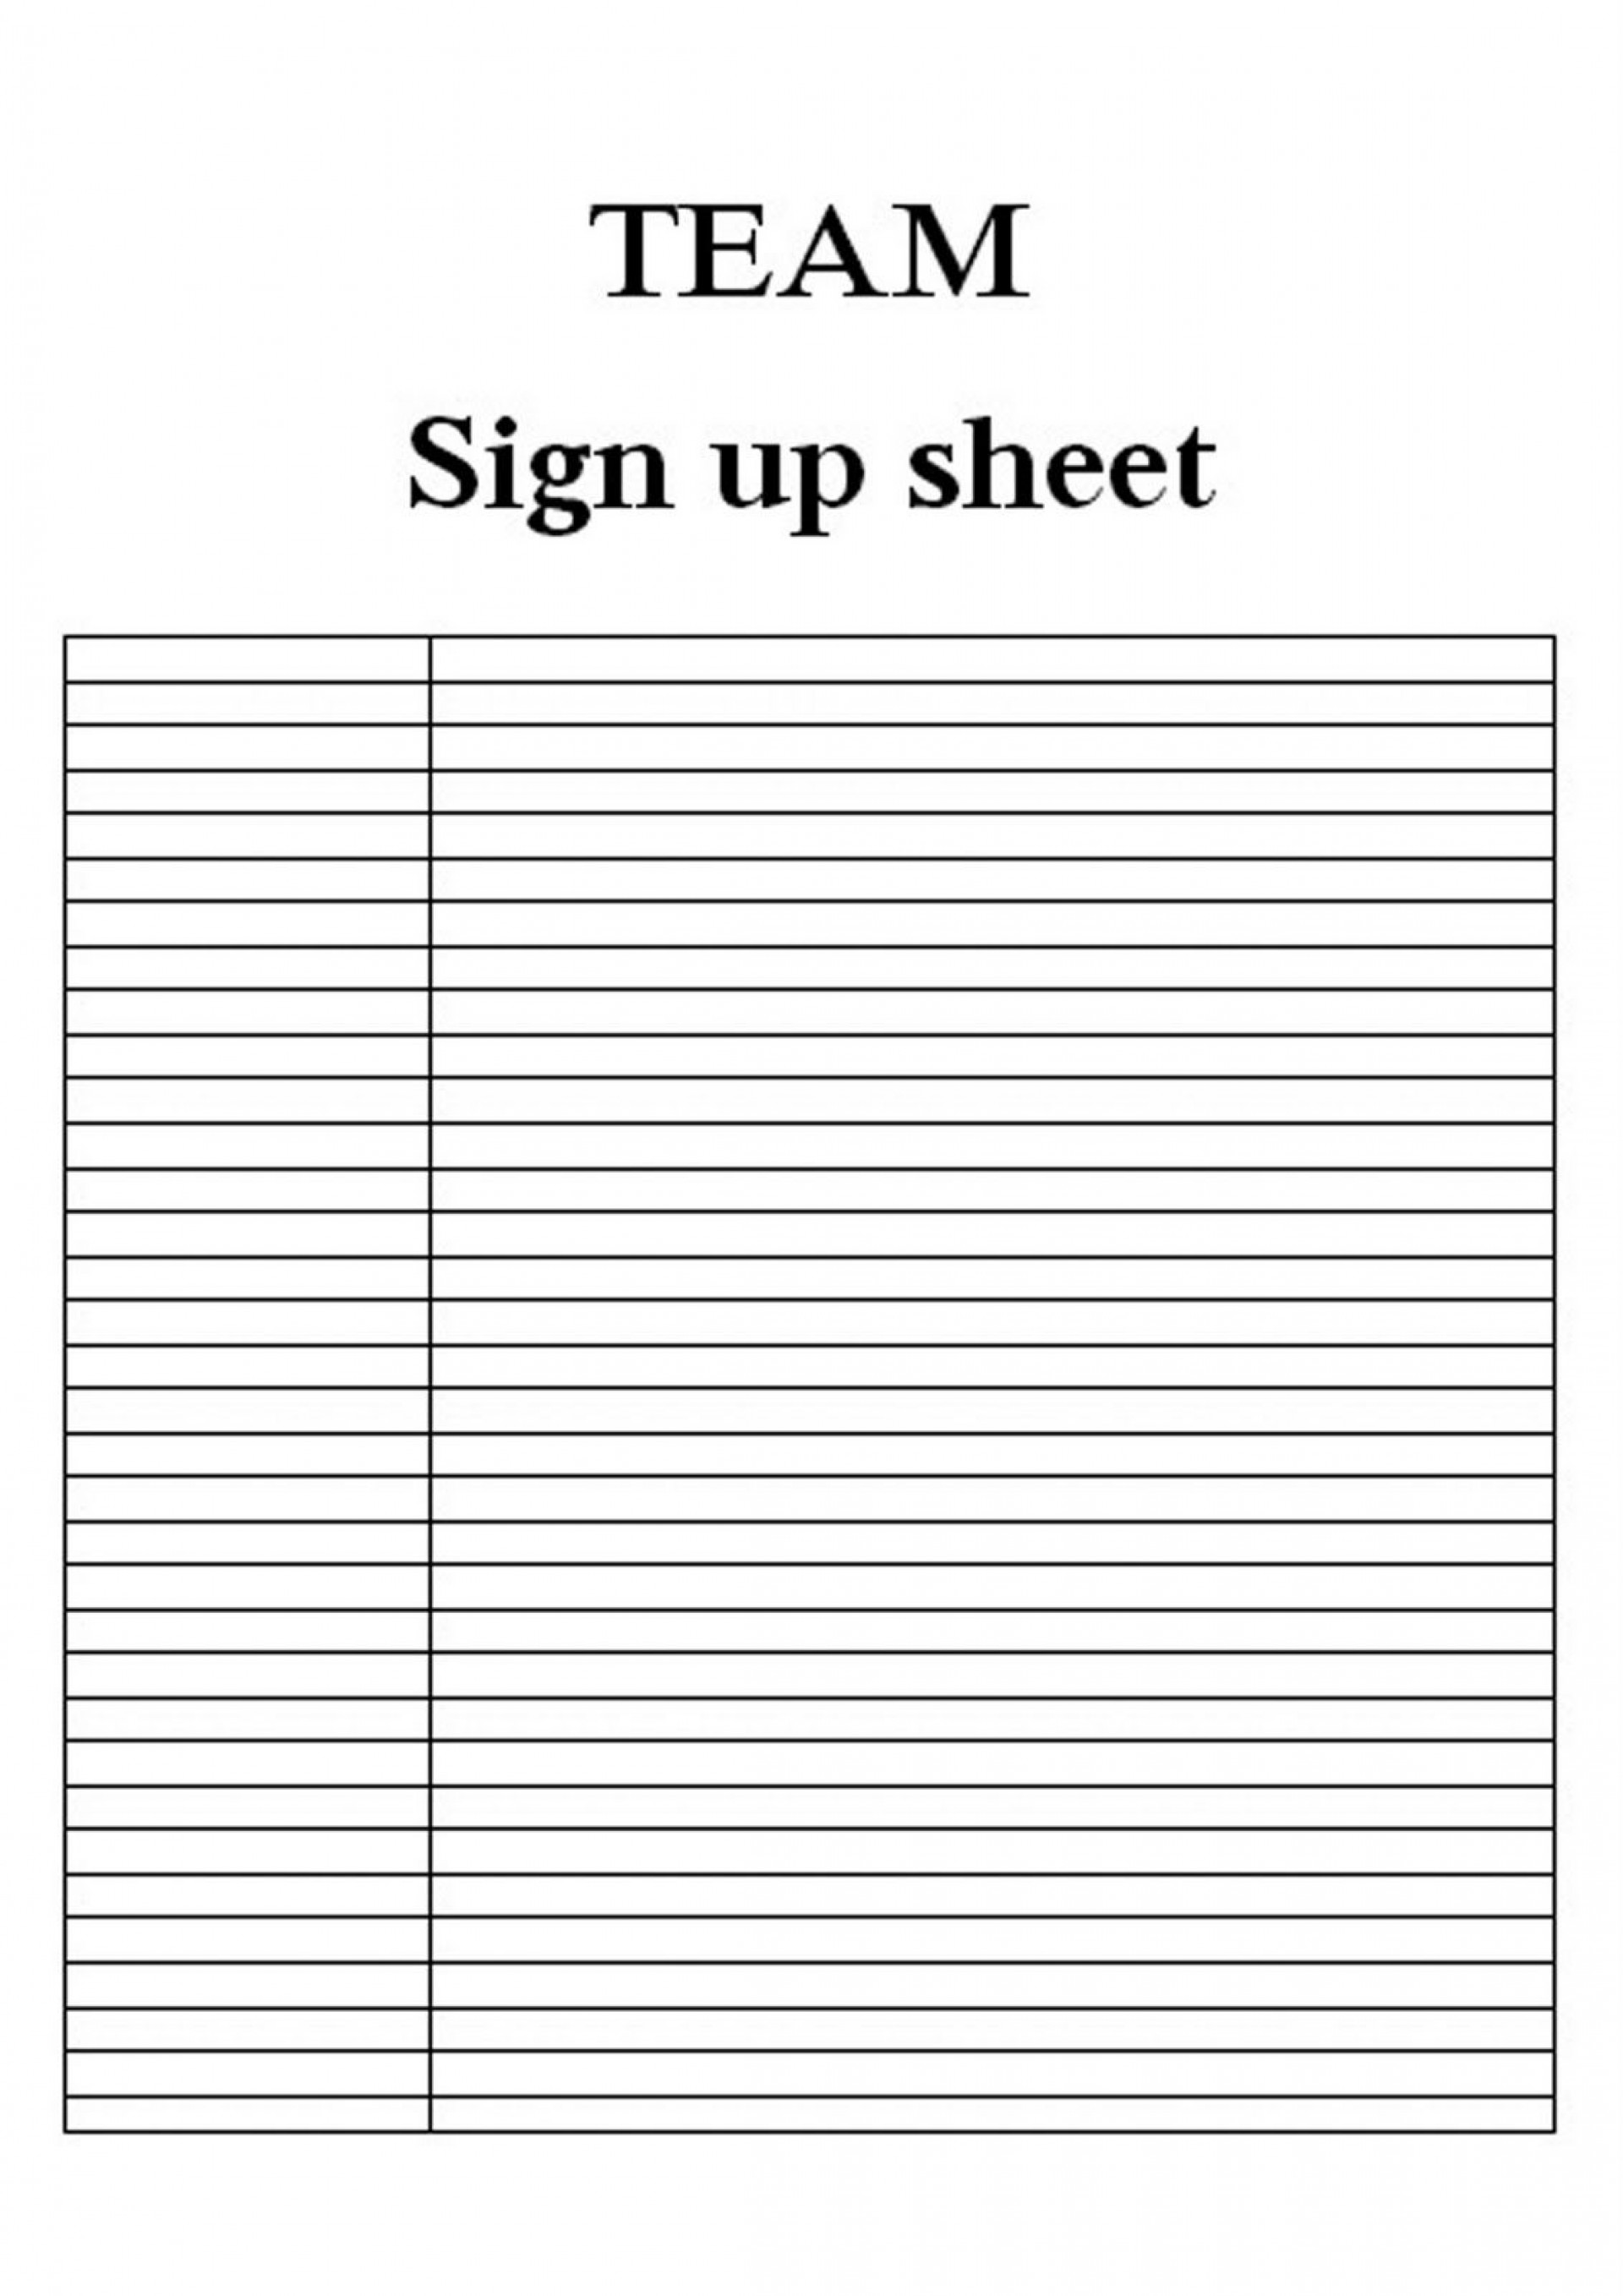 008 Wonderful Free Sign Up Sheet Template High Def  In Word Printable Excel1920